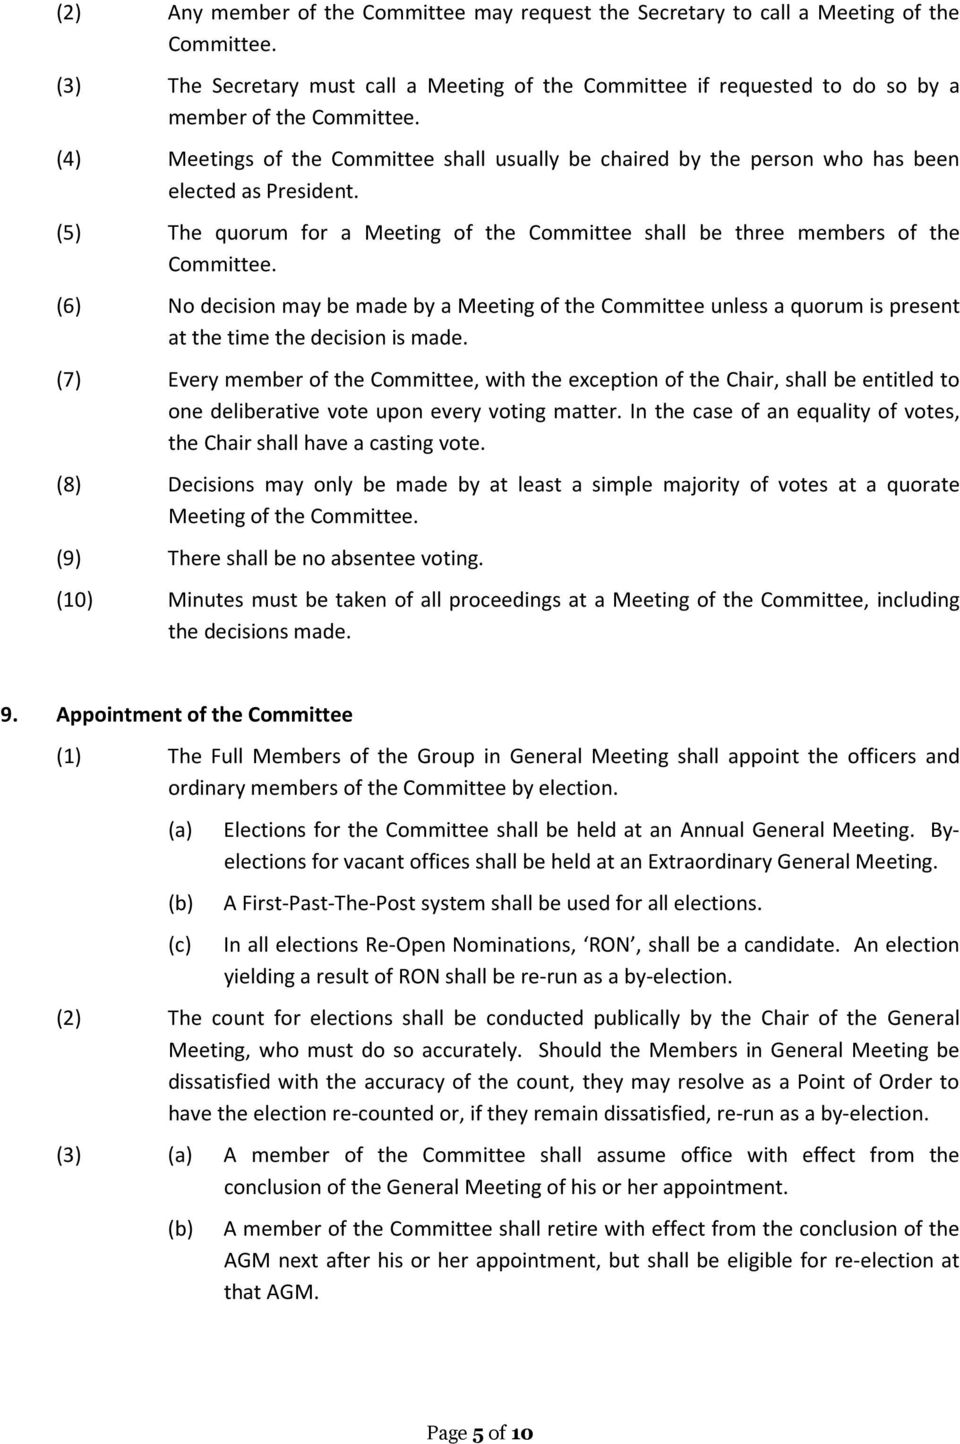 (6) No decision may be made by a Meeting of the Committee unless a quorum is present at the time the decision is made.